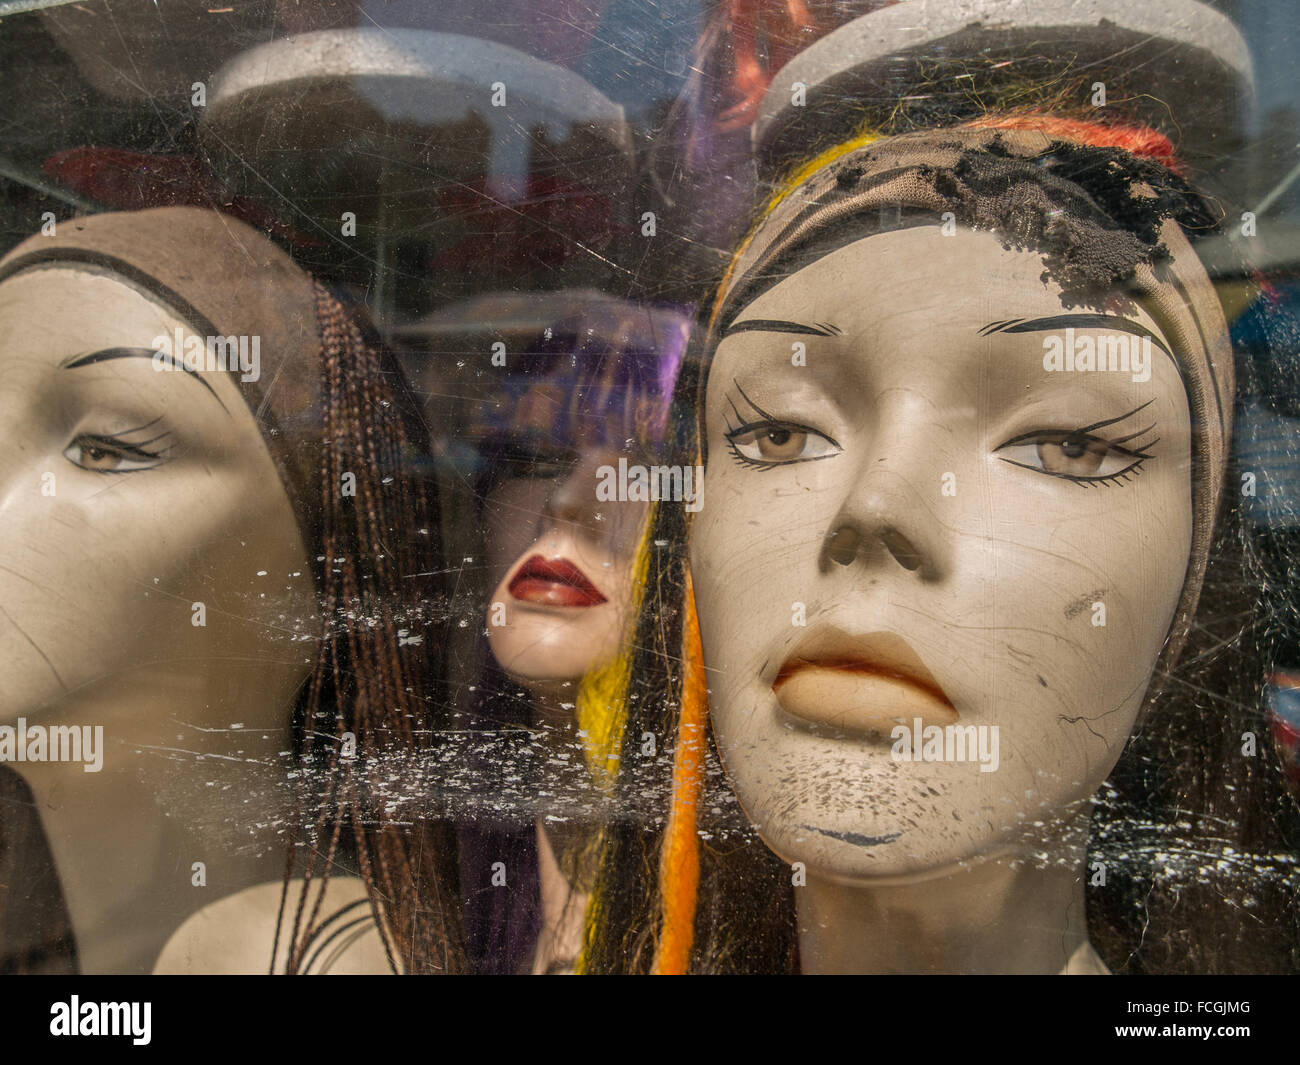 Three female caucasian mannequin heads wearing scarves with very serious expressions in a scratched up store front - Stock Image